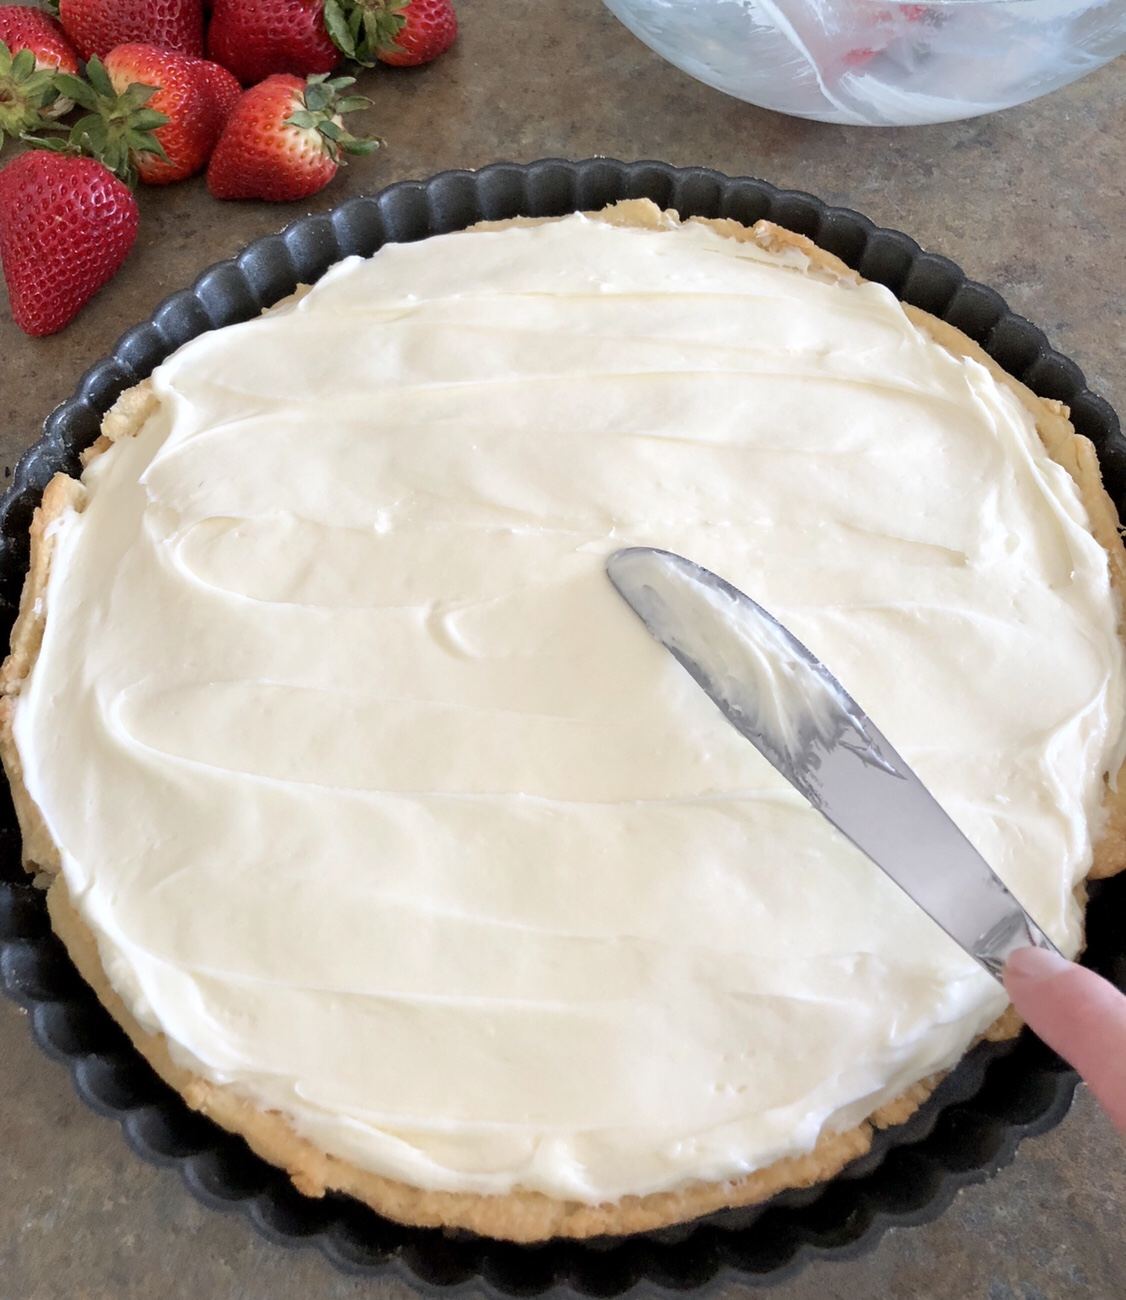 Spread the cream cheese mixture over the chocolate layer. #tart #dessert #summerdessert #memorialdaydessert #fruittart